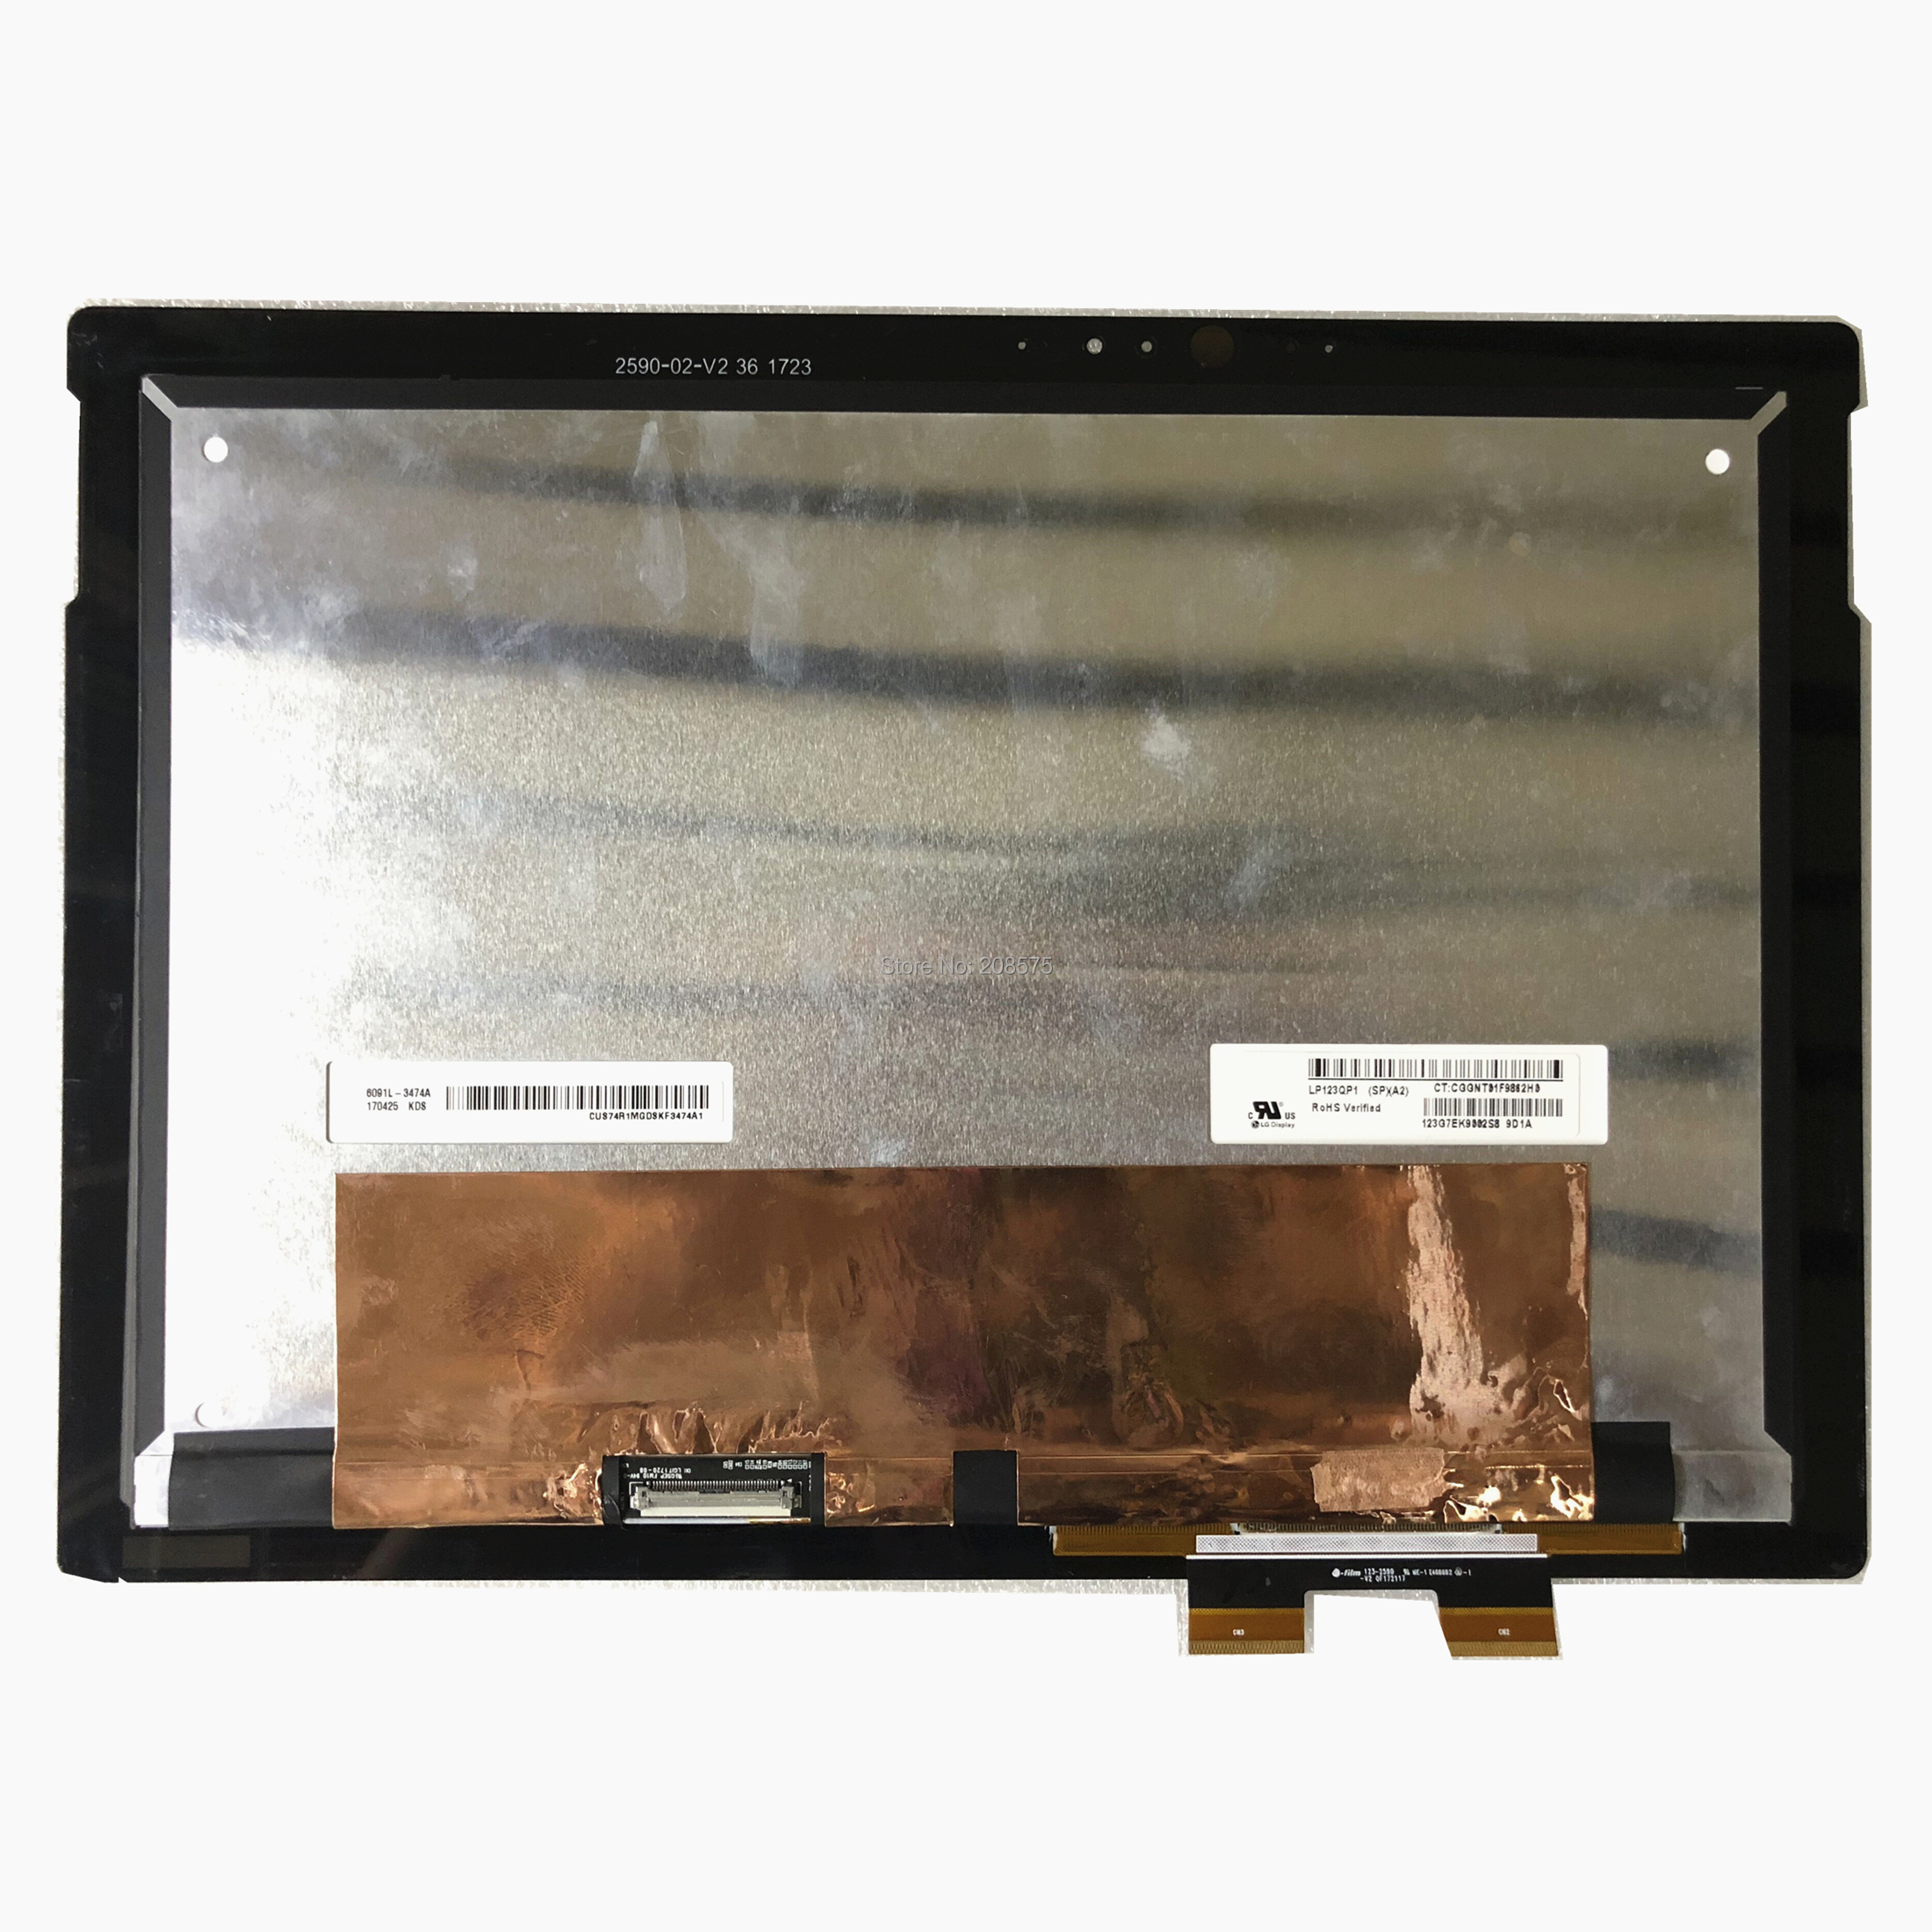 New Laptop LCD Back Cover For Genuine HP Pavilion CQ57 2000 Series 646112-001